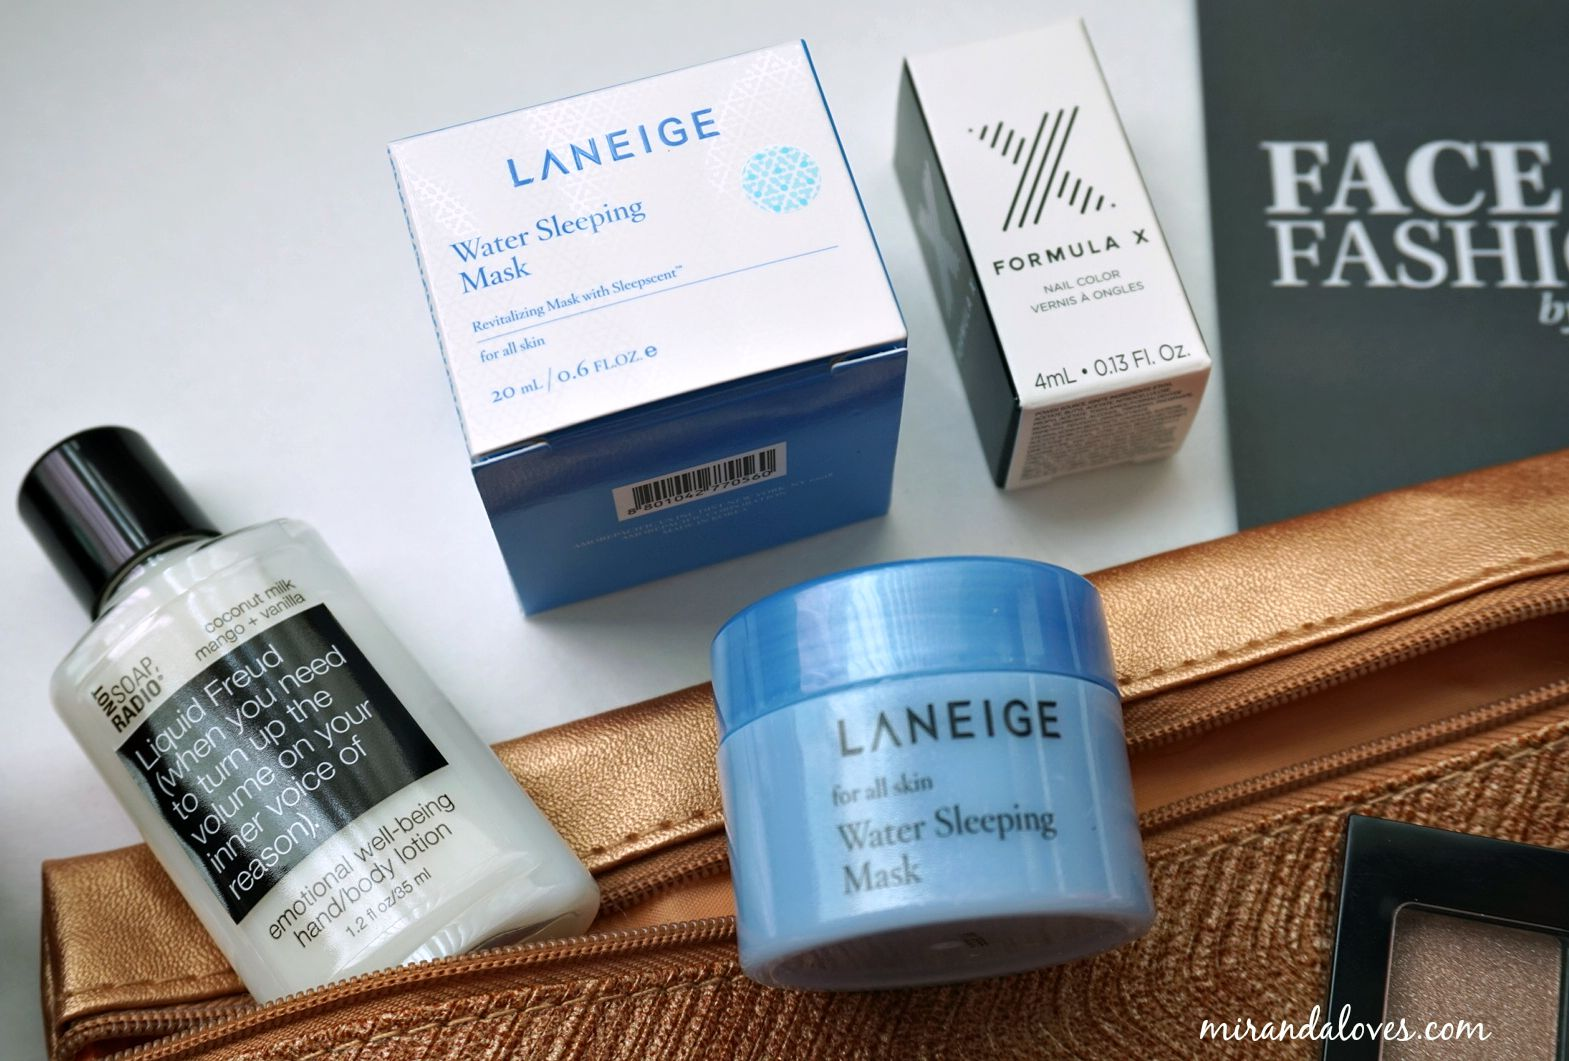 September 2015 Miranda Loves Water Sleeping Mask Laneige Sampel 4ml The Is My All Time Favorite Product Ever Received In Ipsy Bag Subscription This Gives You Baby Soft Skin When Applied At